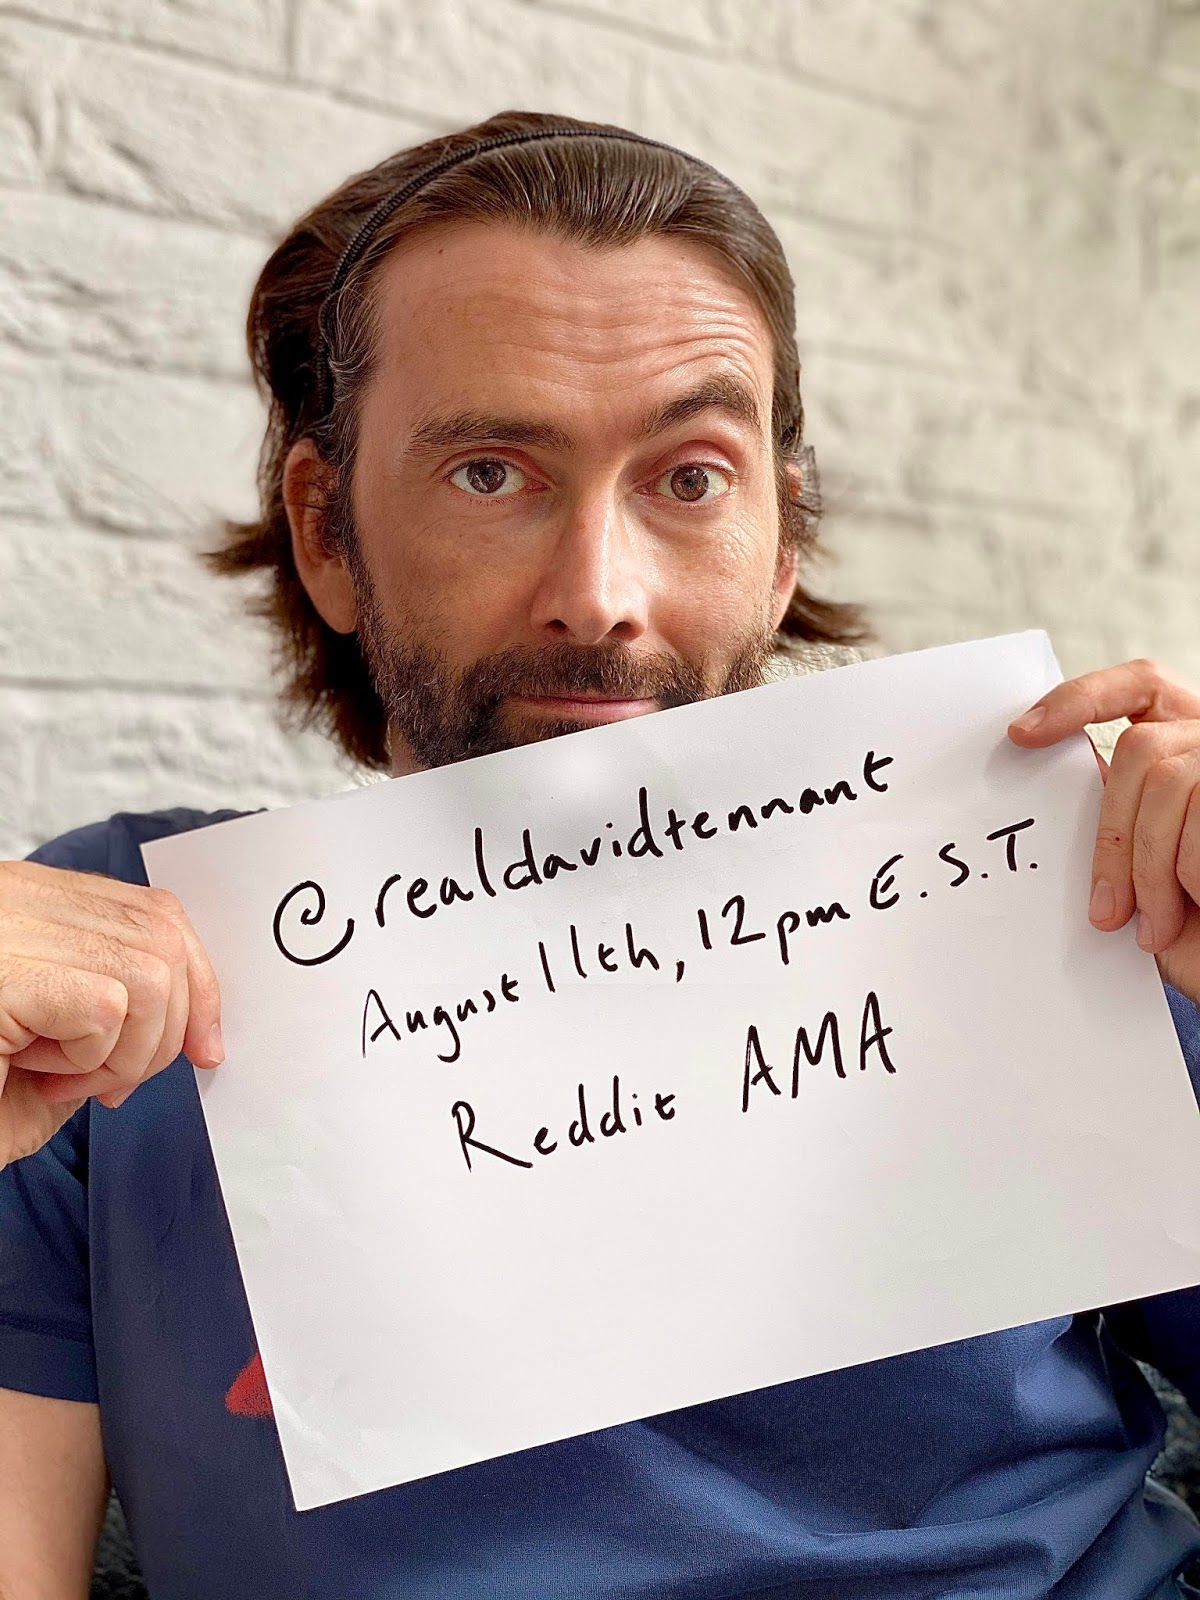 Reddit Halloween Brooklyn 2020 David Tennant On Reddit: All The Answers From His AMA